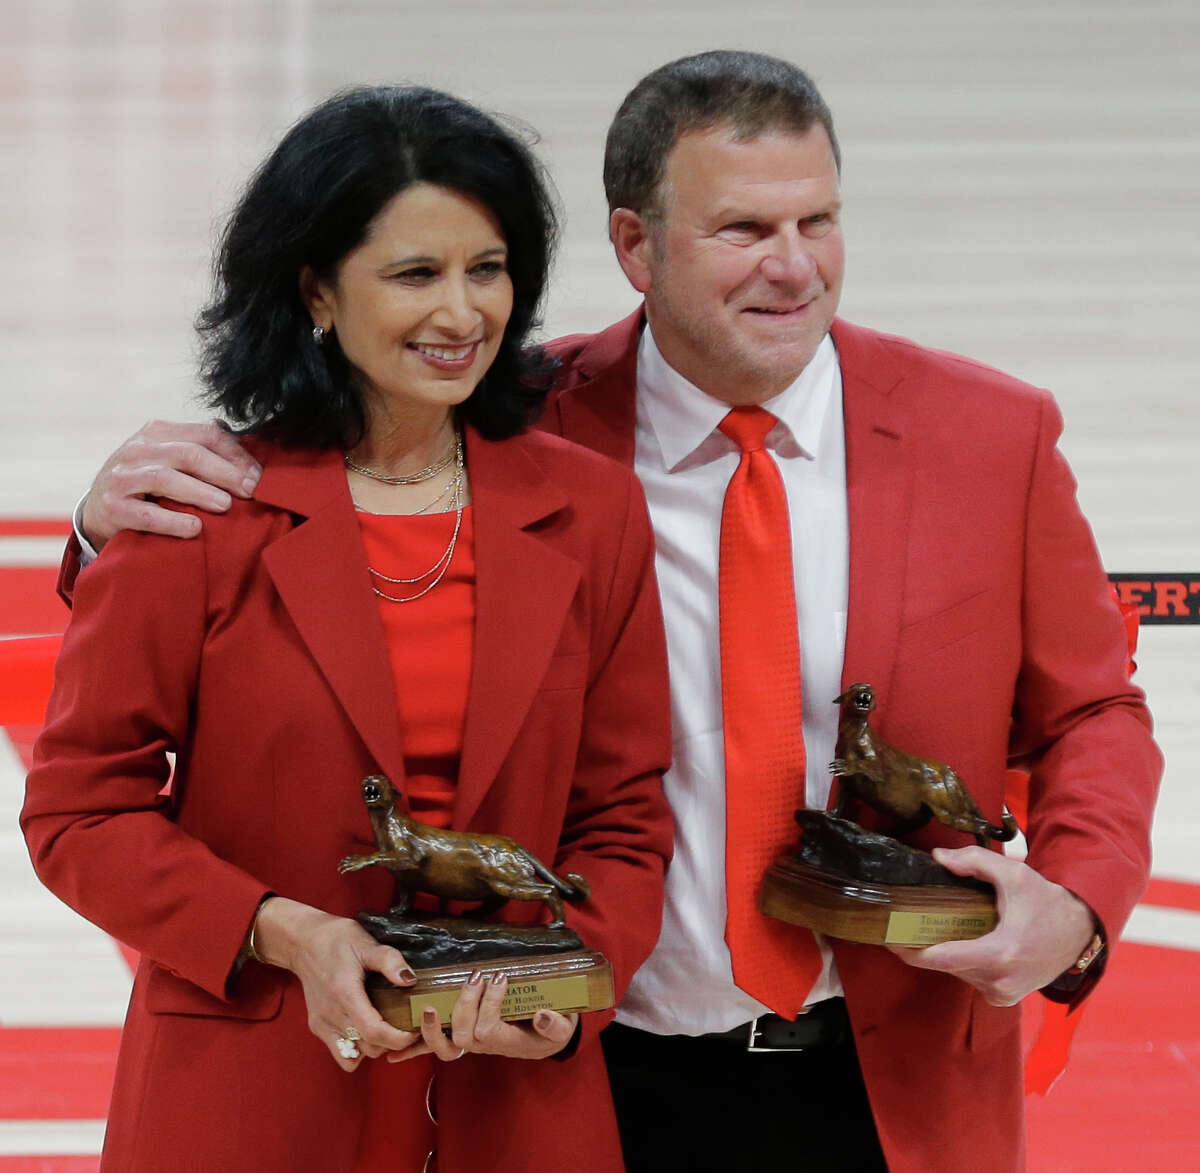 Renu Khator, University of Houston president, left, and Tilman Fertitta, chairman of the University of Houston System Board of Regents, right, were inducted into the UH Athletics Hall of Honor. Khator was a surprise inductee. >>> Scroll through to see more on the UH Athletics Hall of Honor induction ceremony.